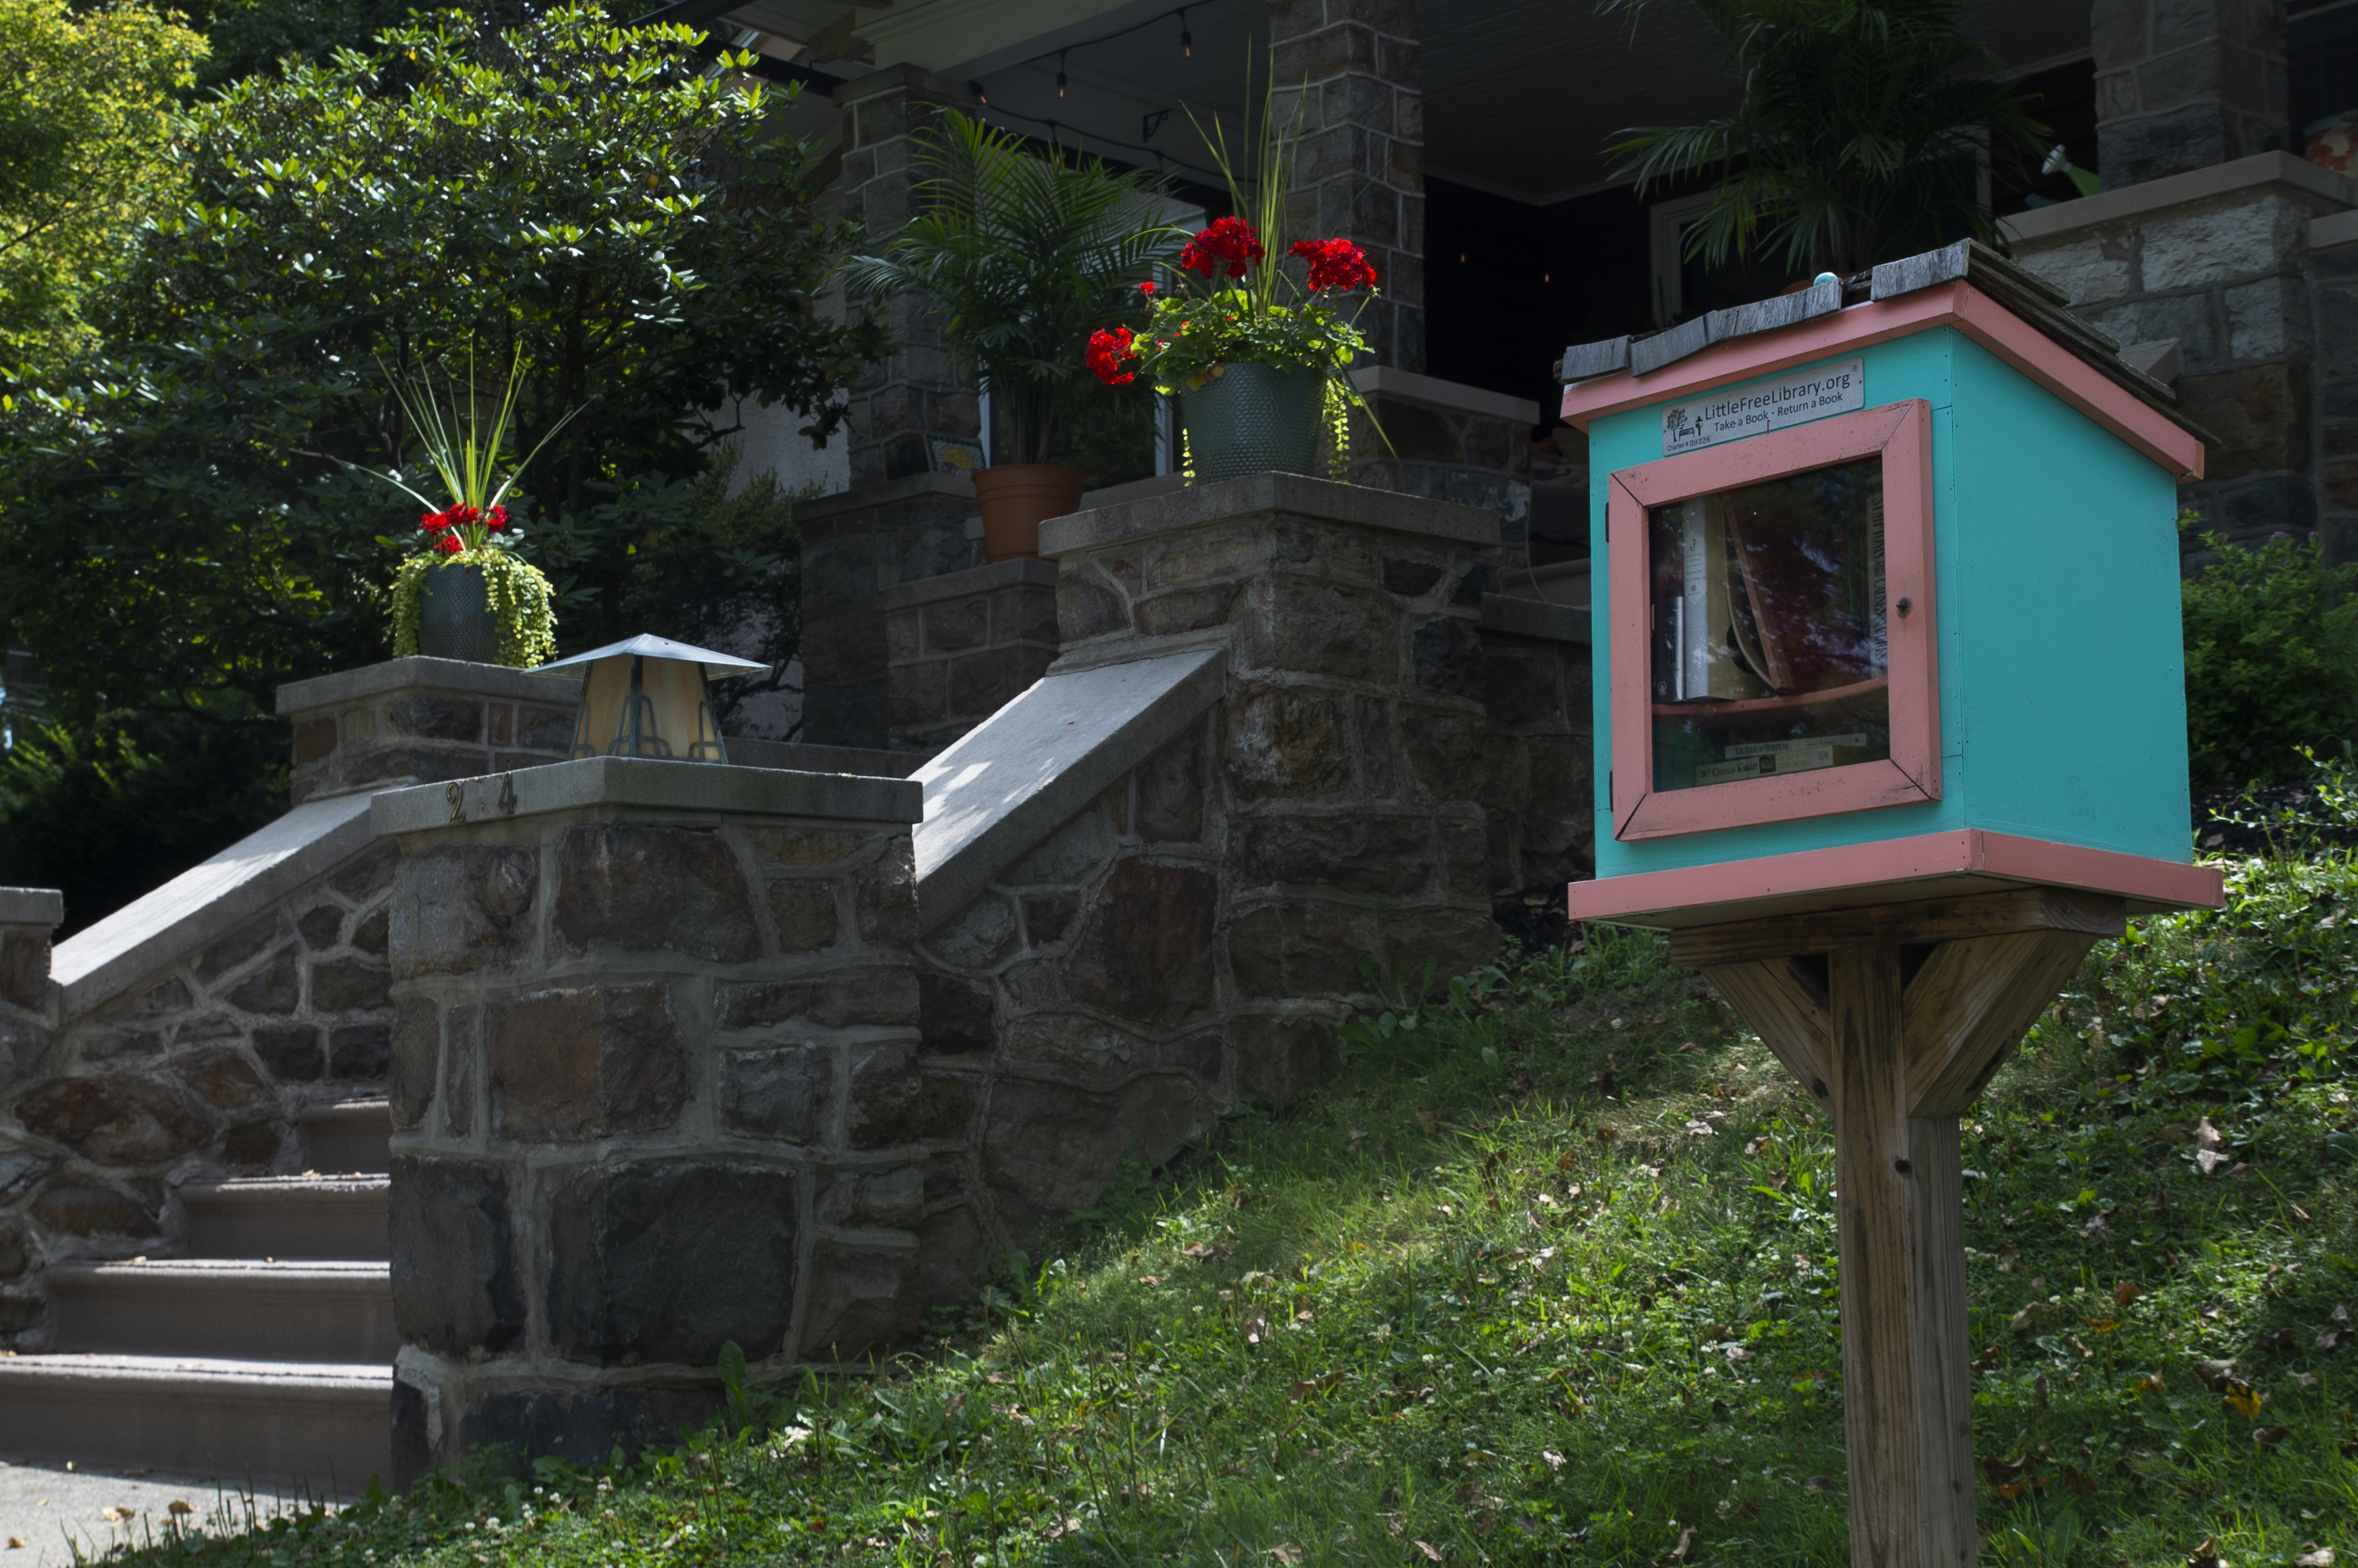 Find A Little Free Library Kiosk Near You The Morning Call